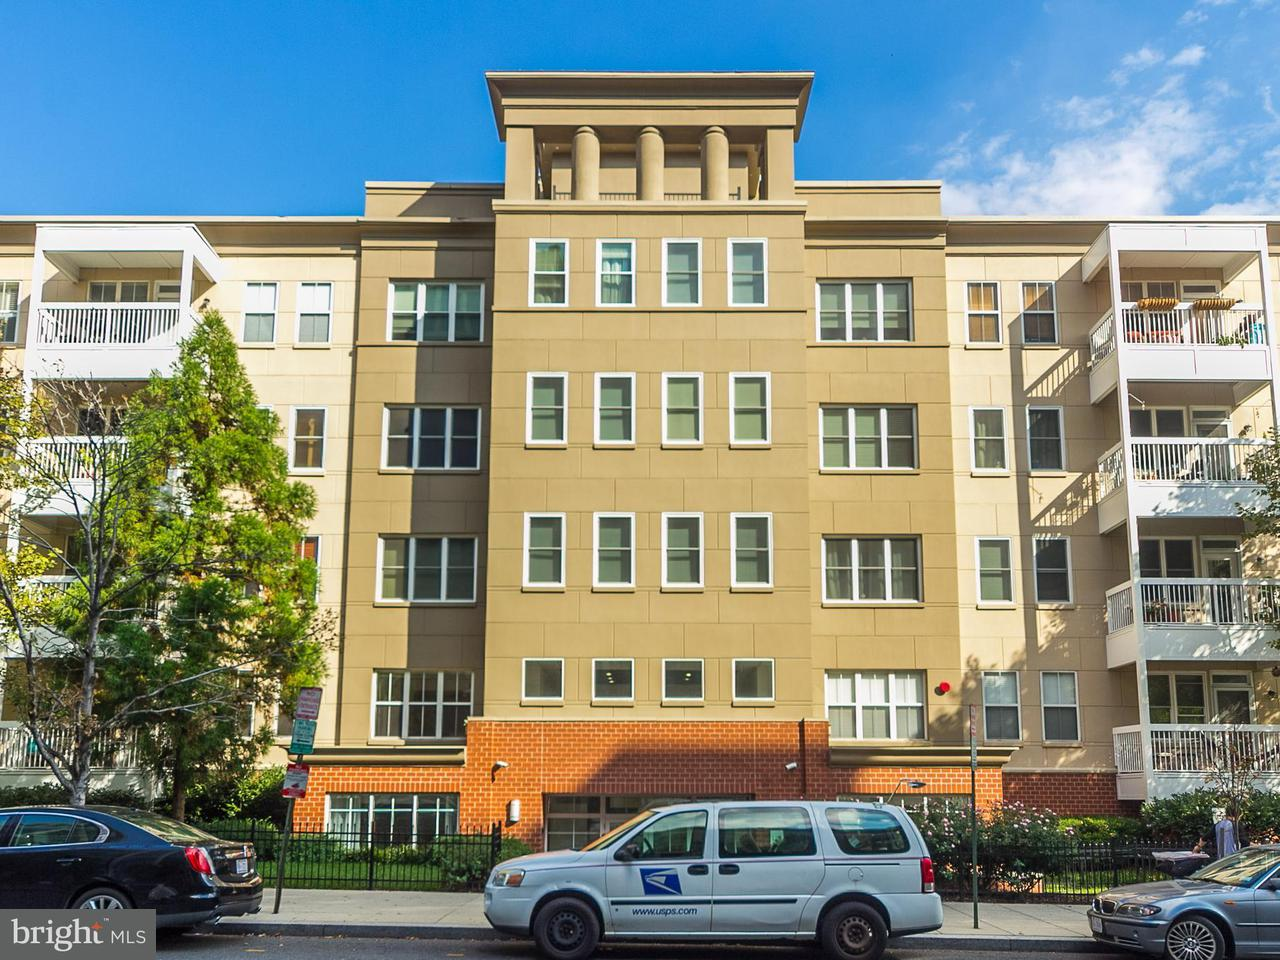 Single Family Home for Sale at 2001 12TH ST NW #120 2001 12TH ST NW #120 Washington, District Of Columbia 20009 United States